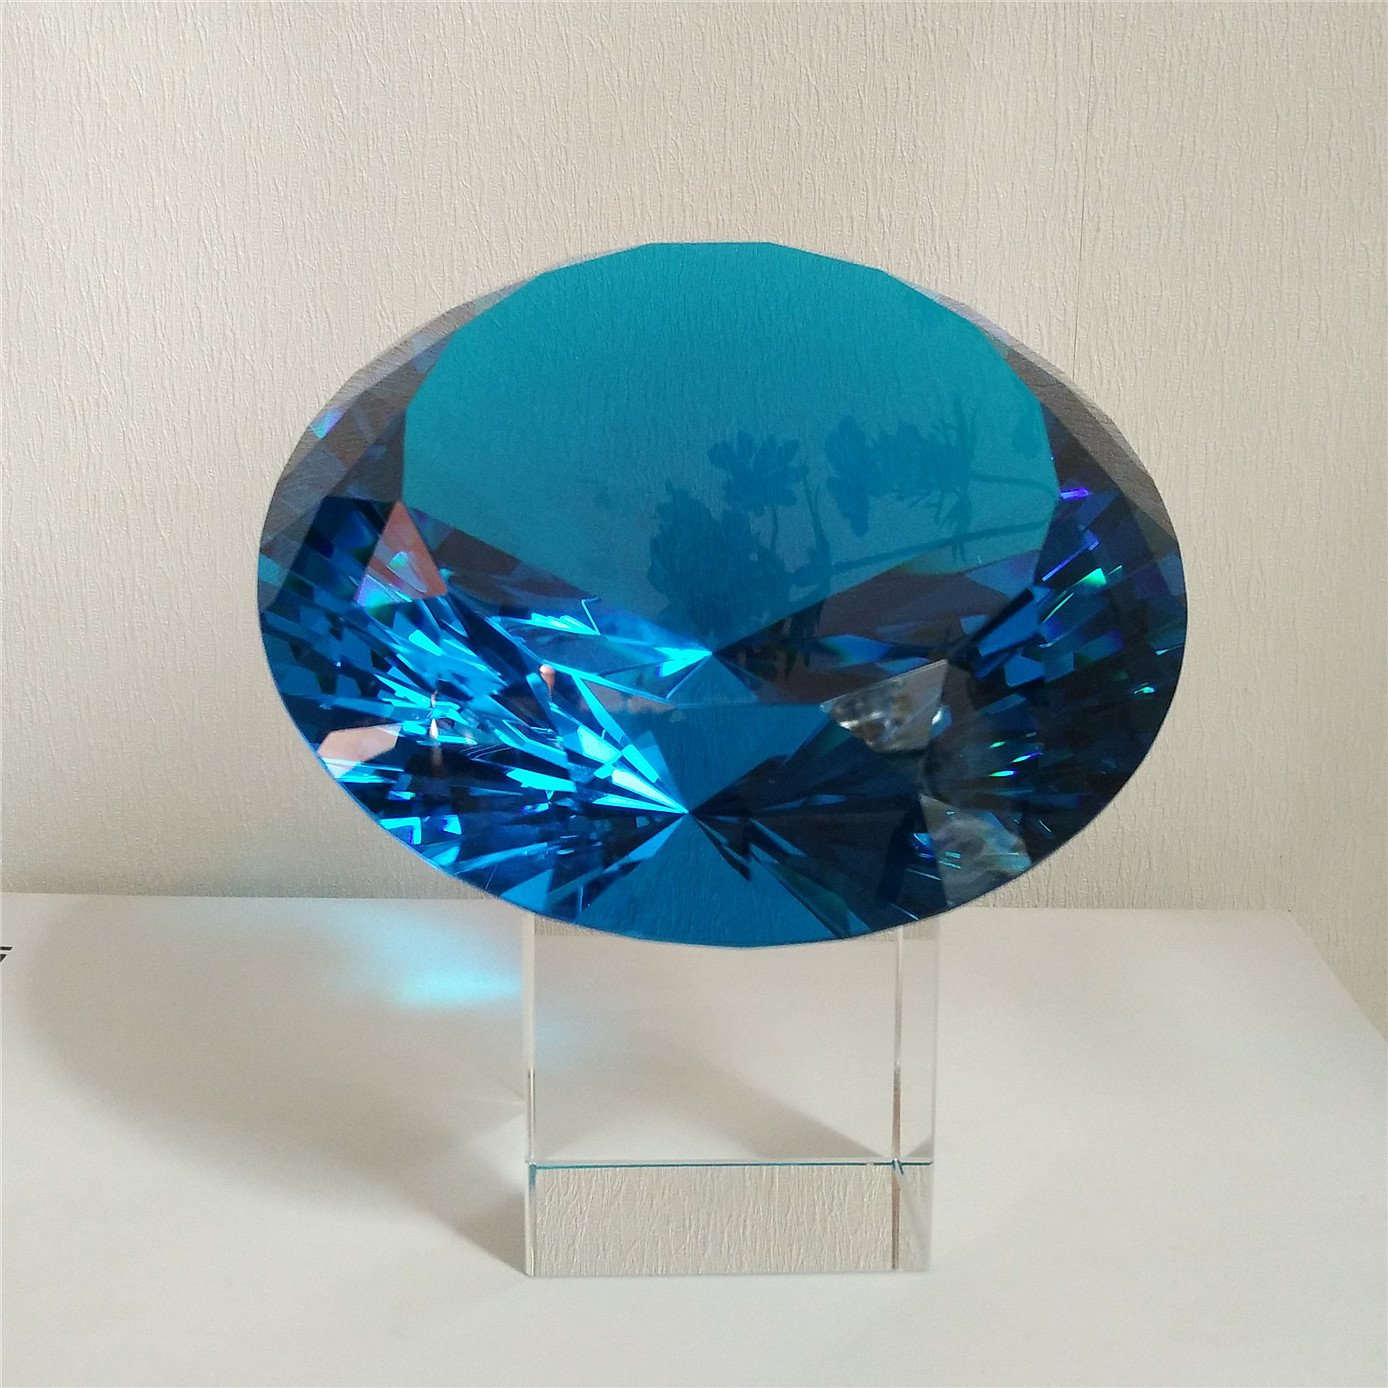 BRLIGHTING Cobalt Blue crystal Diamond Paperweight on stand for Office, Lovely Gift for Friends and Family (D120mm / 4.73'') by BRLIGHTING (Image #3)